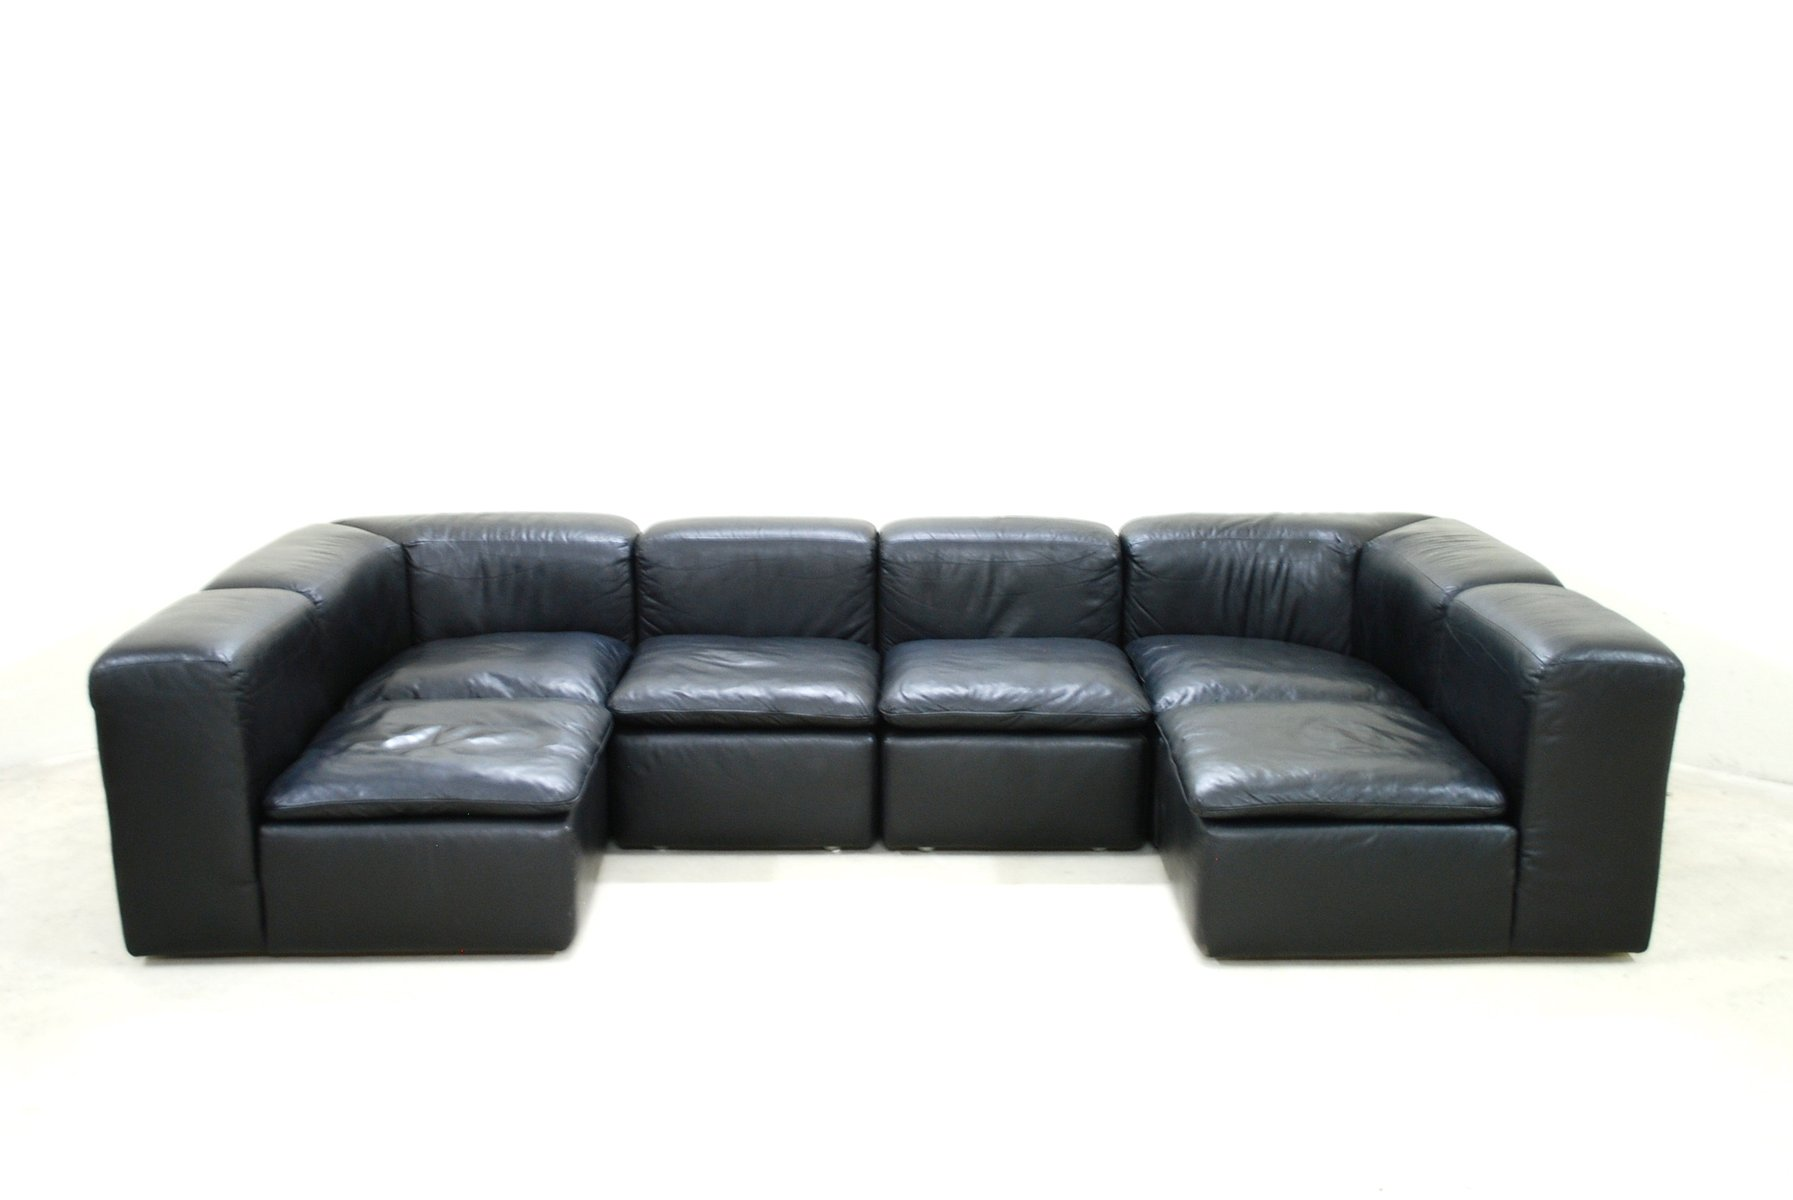 modular black cube design wk 550 leather sofa by ernst. Black Bedroom Furniture Sets. Home Design Ideas